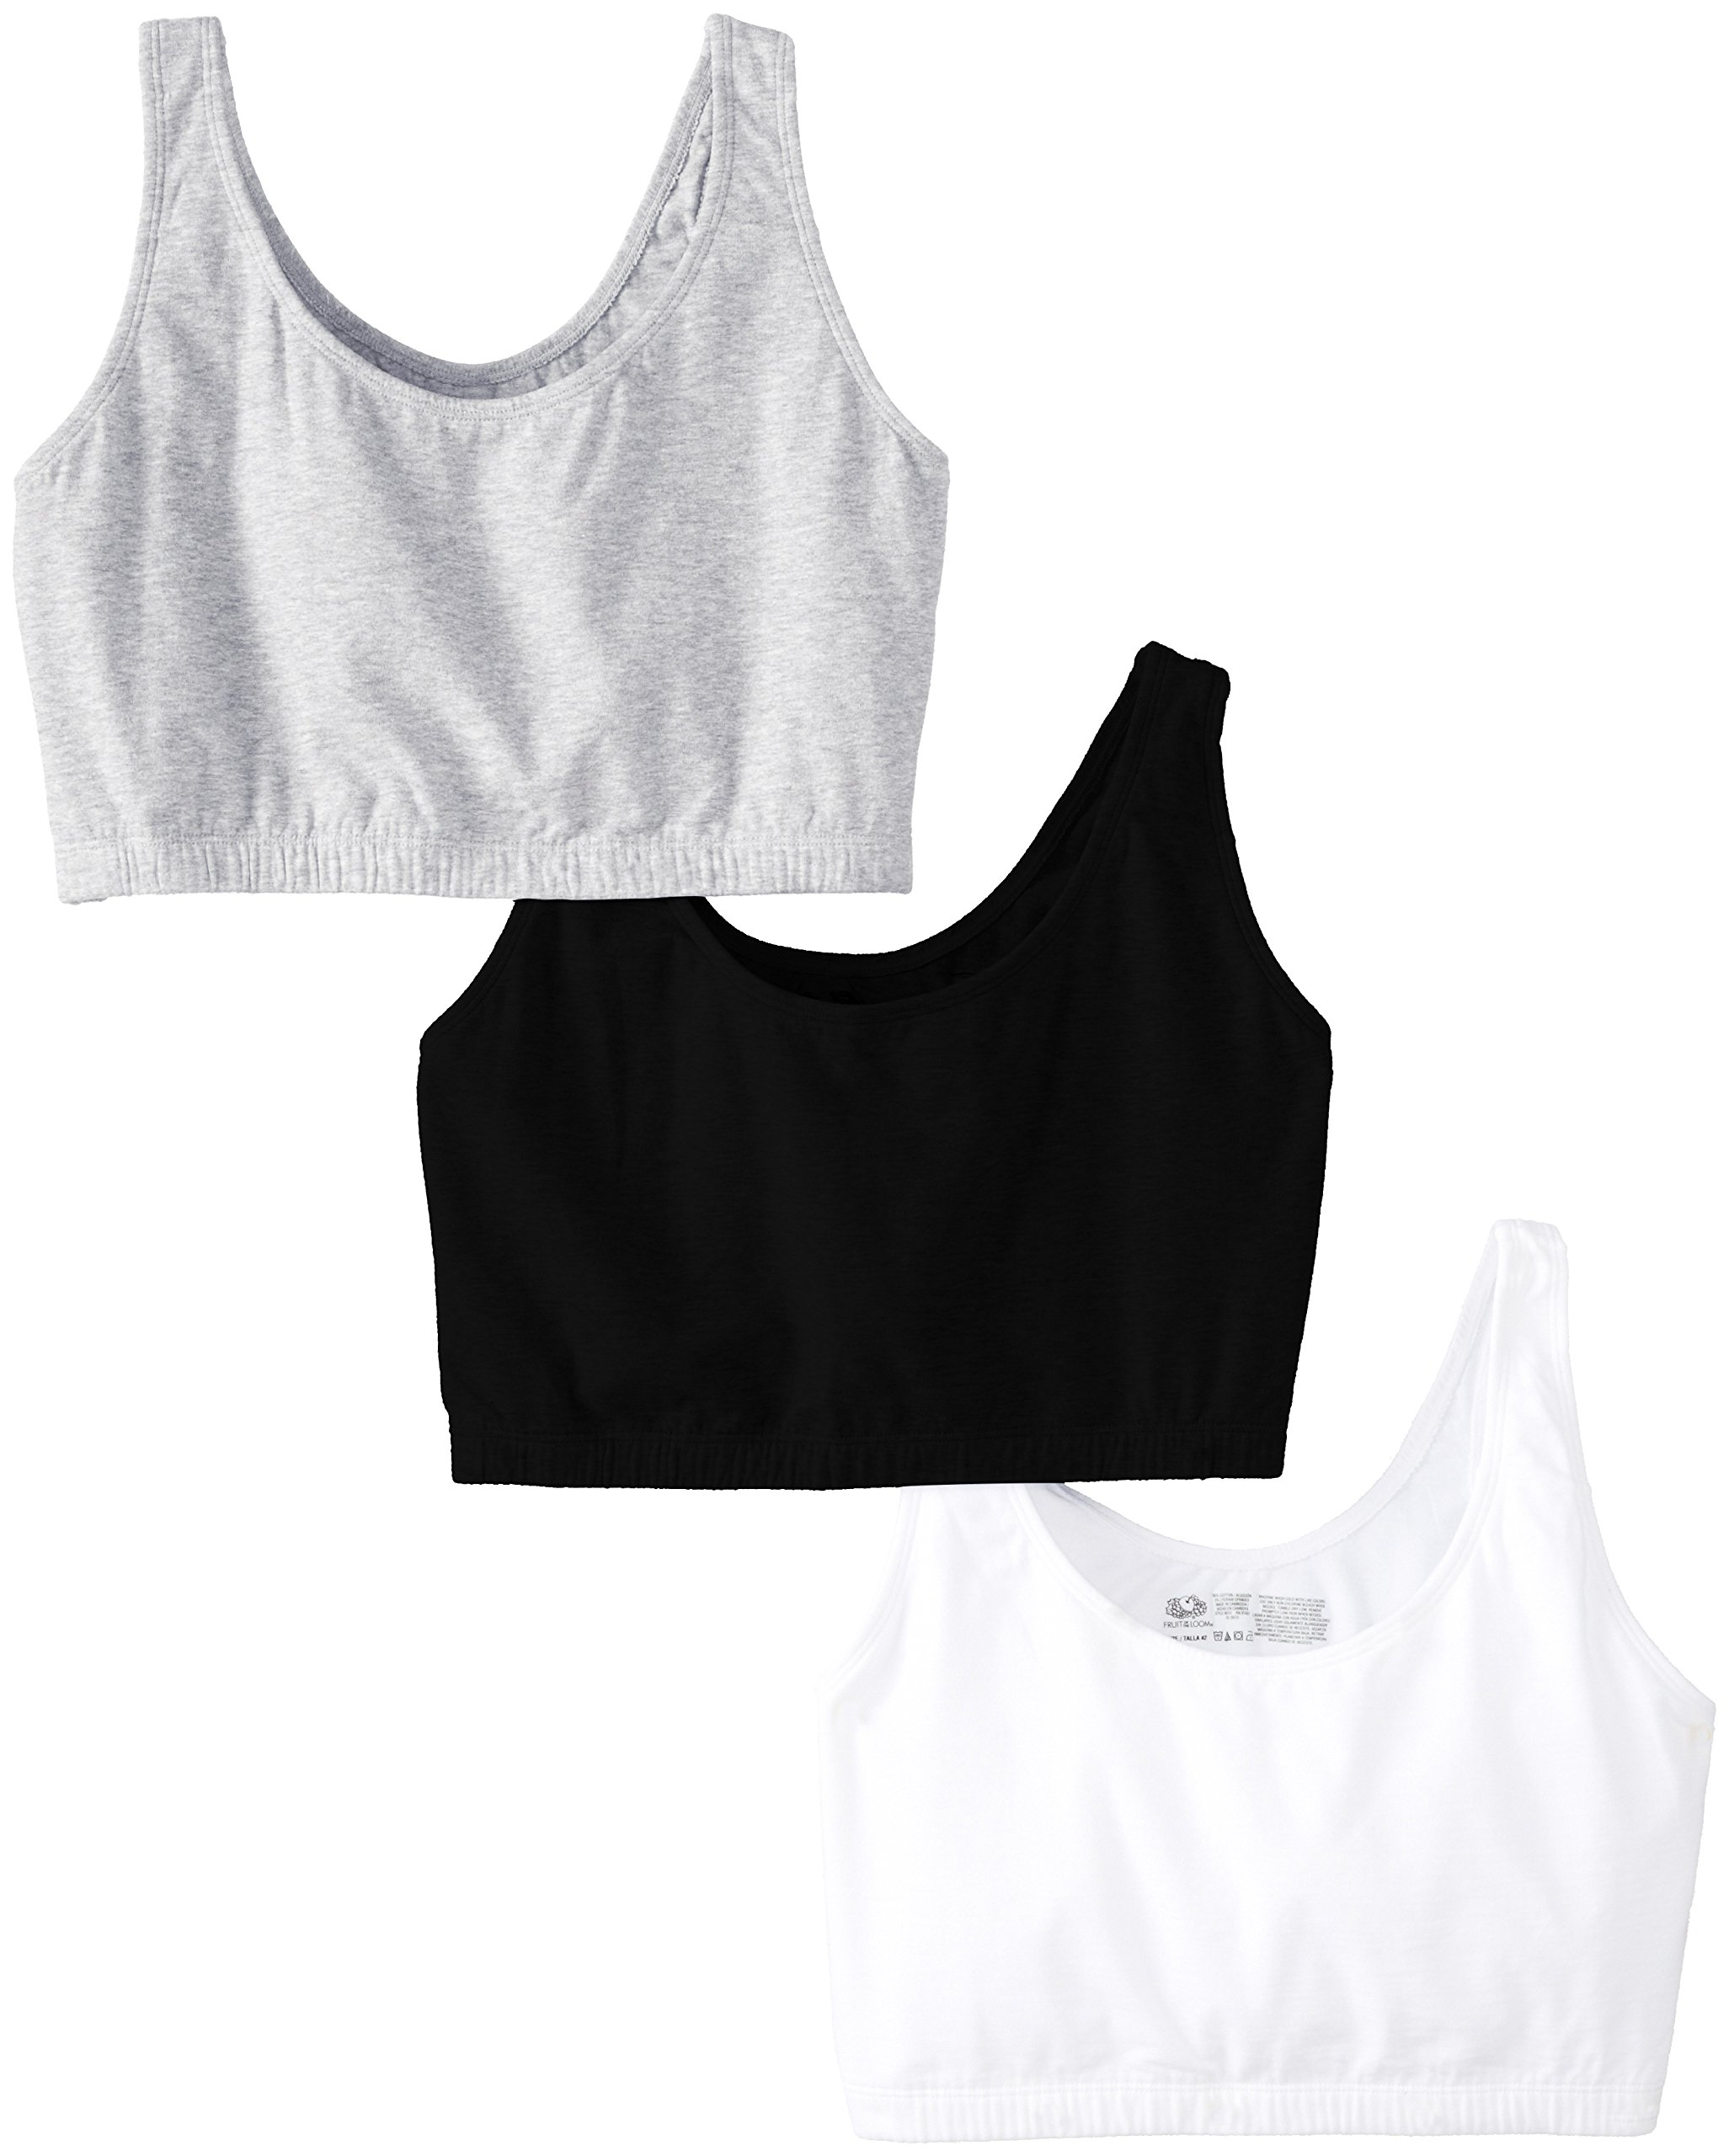 Fruit of the Loom Womens Built-up Sports Bra, Black/White/Heather Grey, 48 by Fruit of the Loom